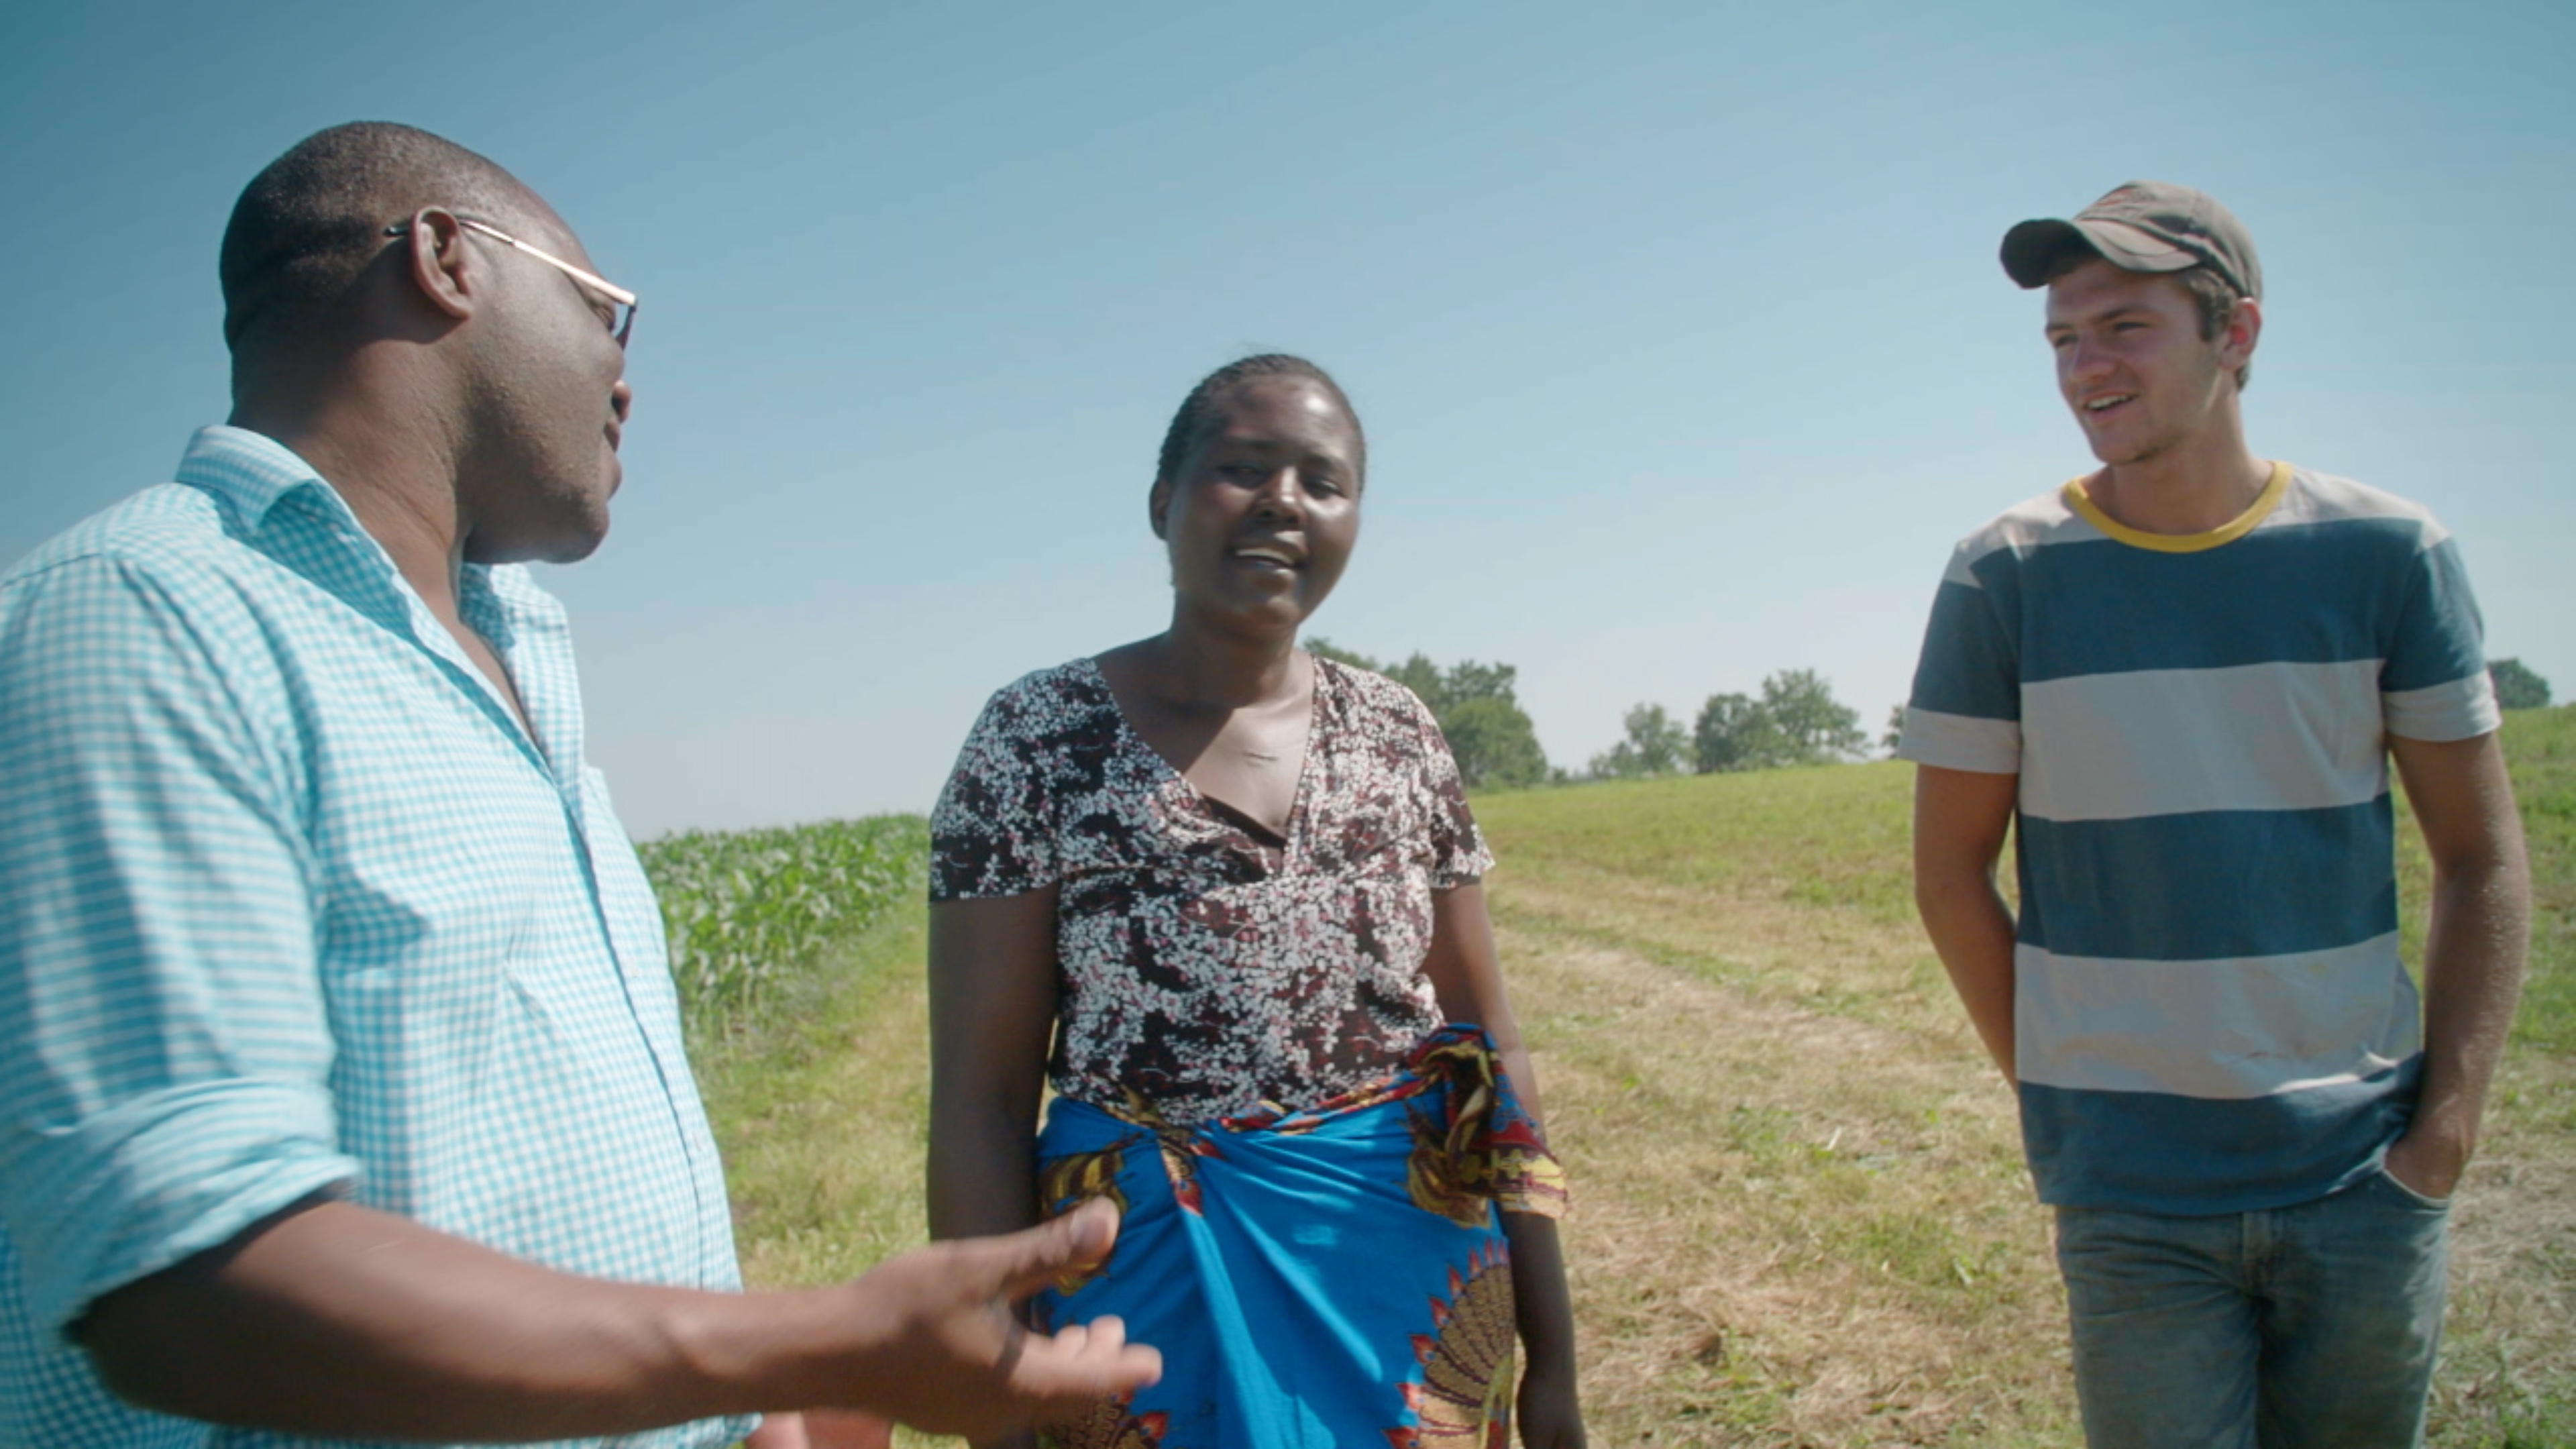 Three people stood talking in a field. A man on the left gestures with his hand towards the woman and young man stood beside him.